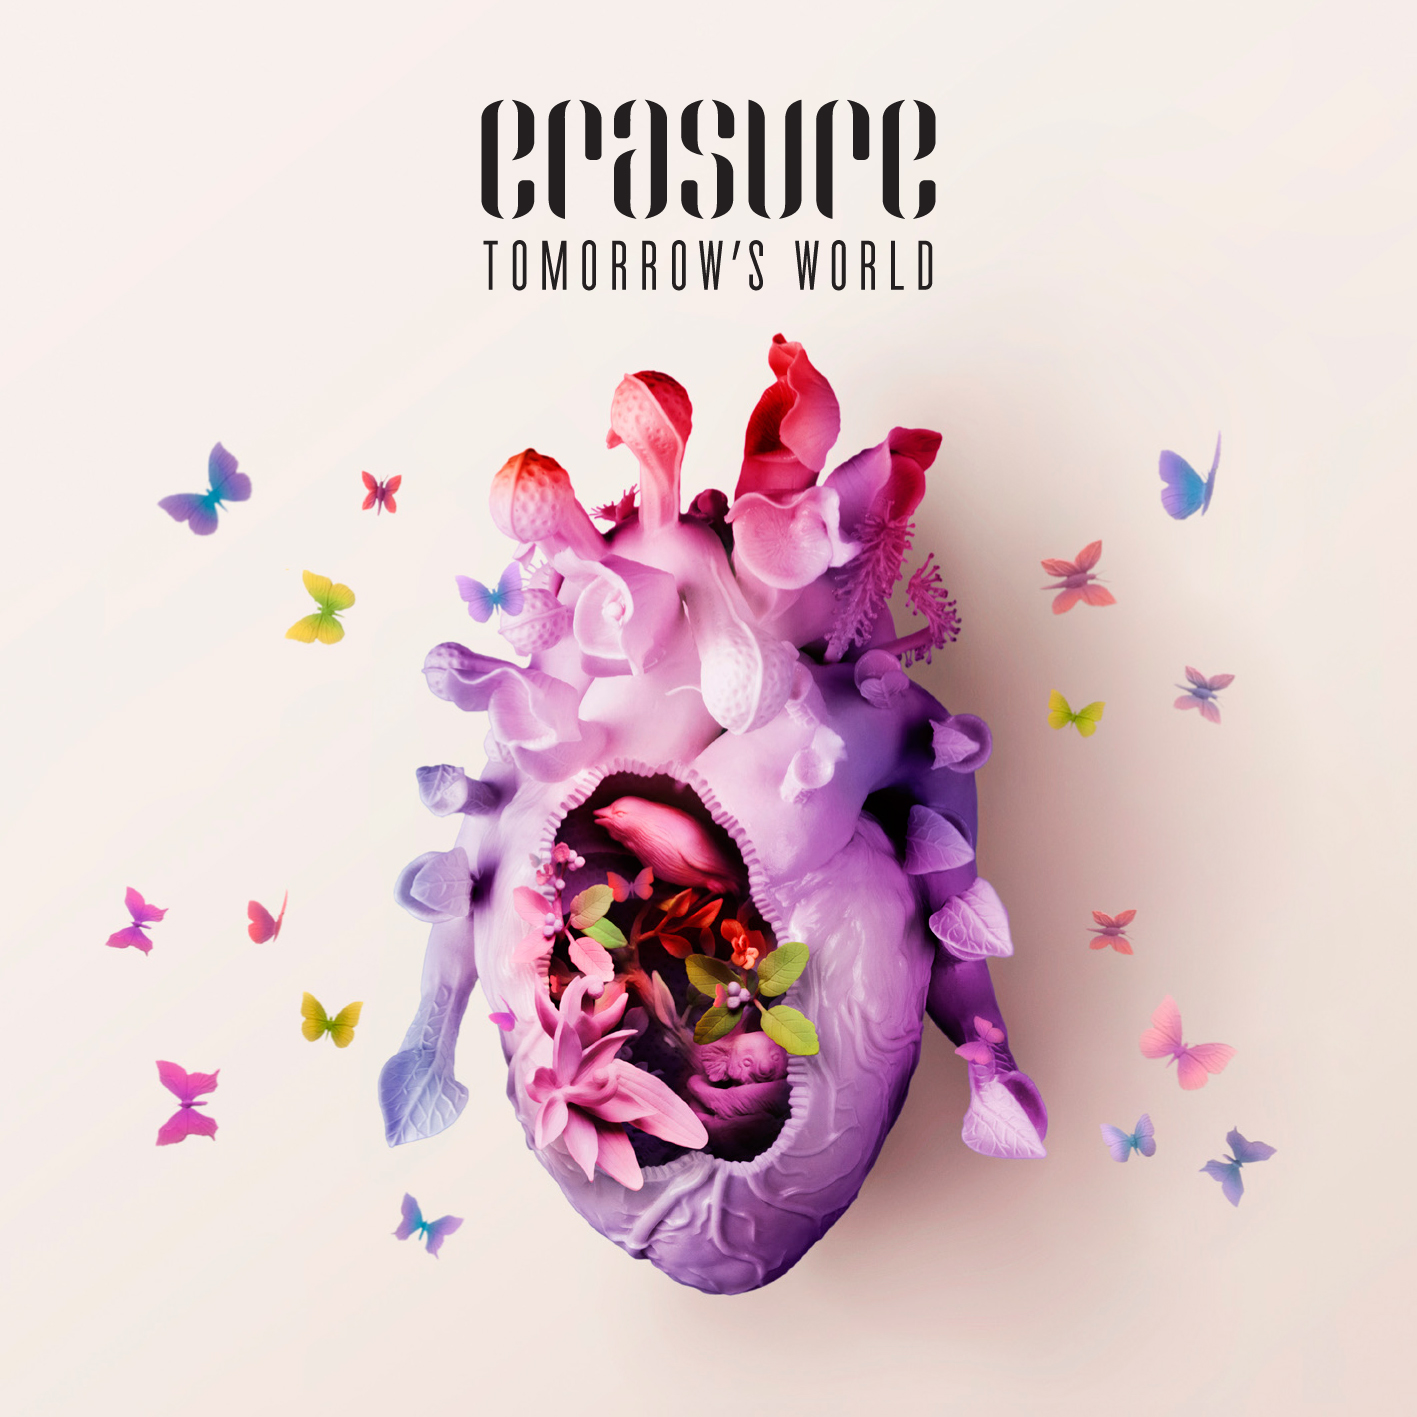 Erasure Tomorrow´s World (Erasure)